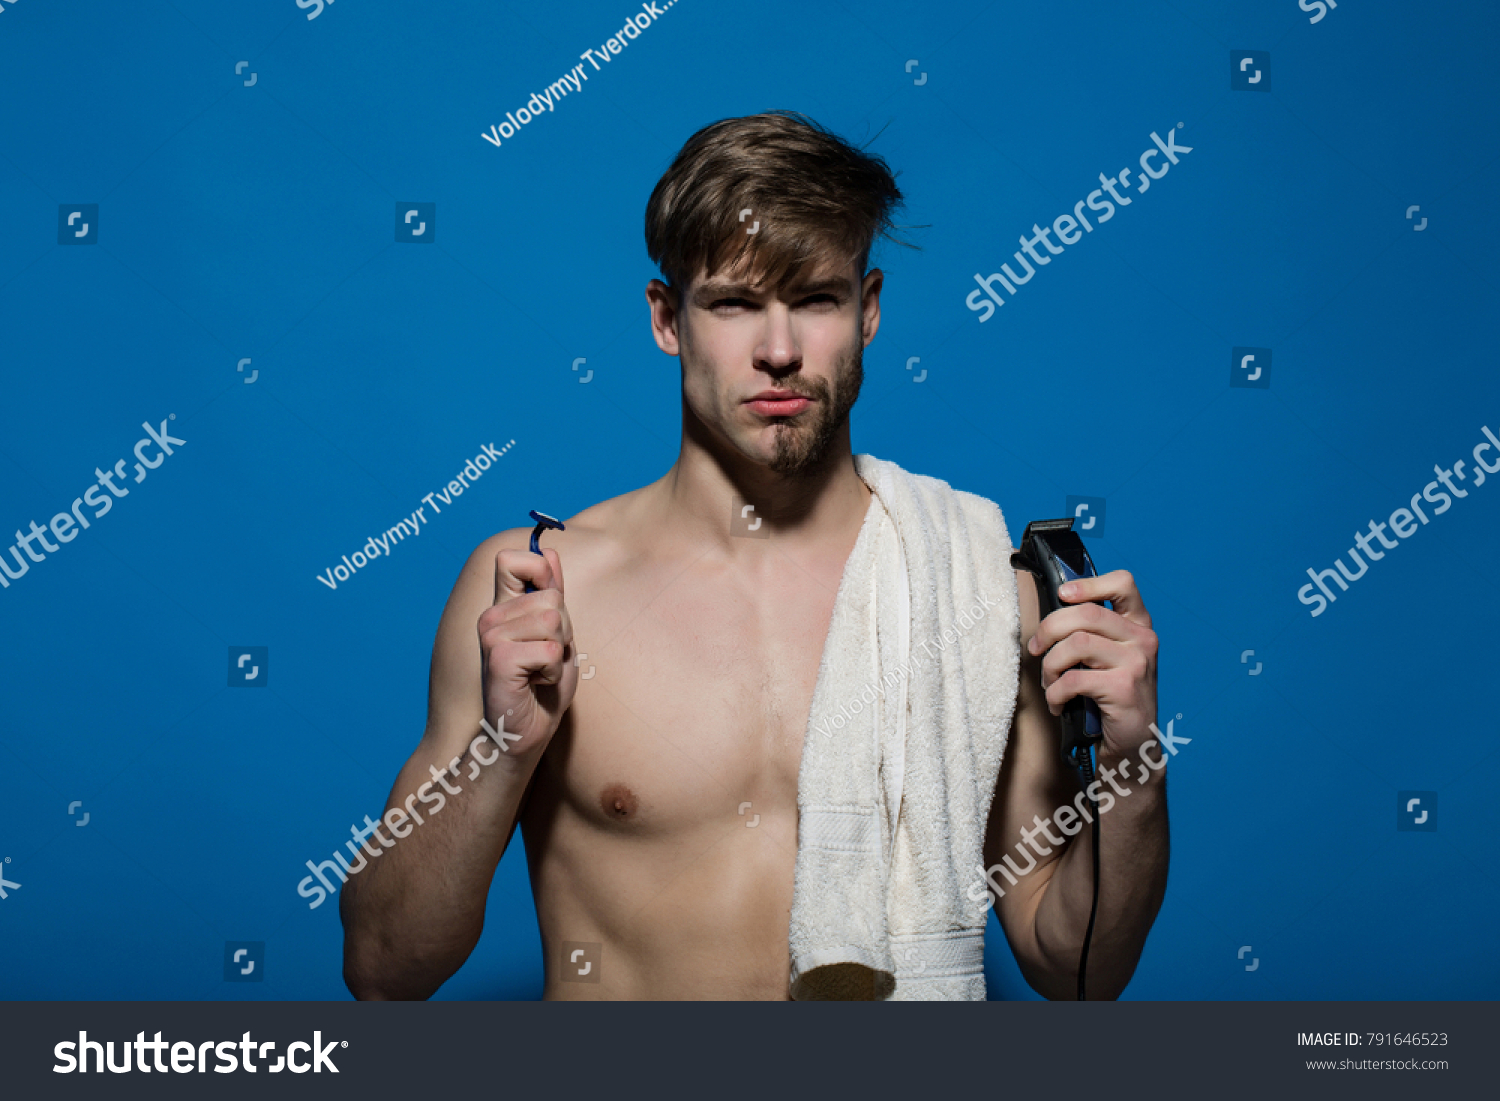 Macho with half bearded face, bath towel on muscular torso. Man choose  safety or